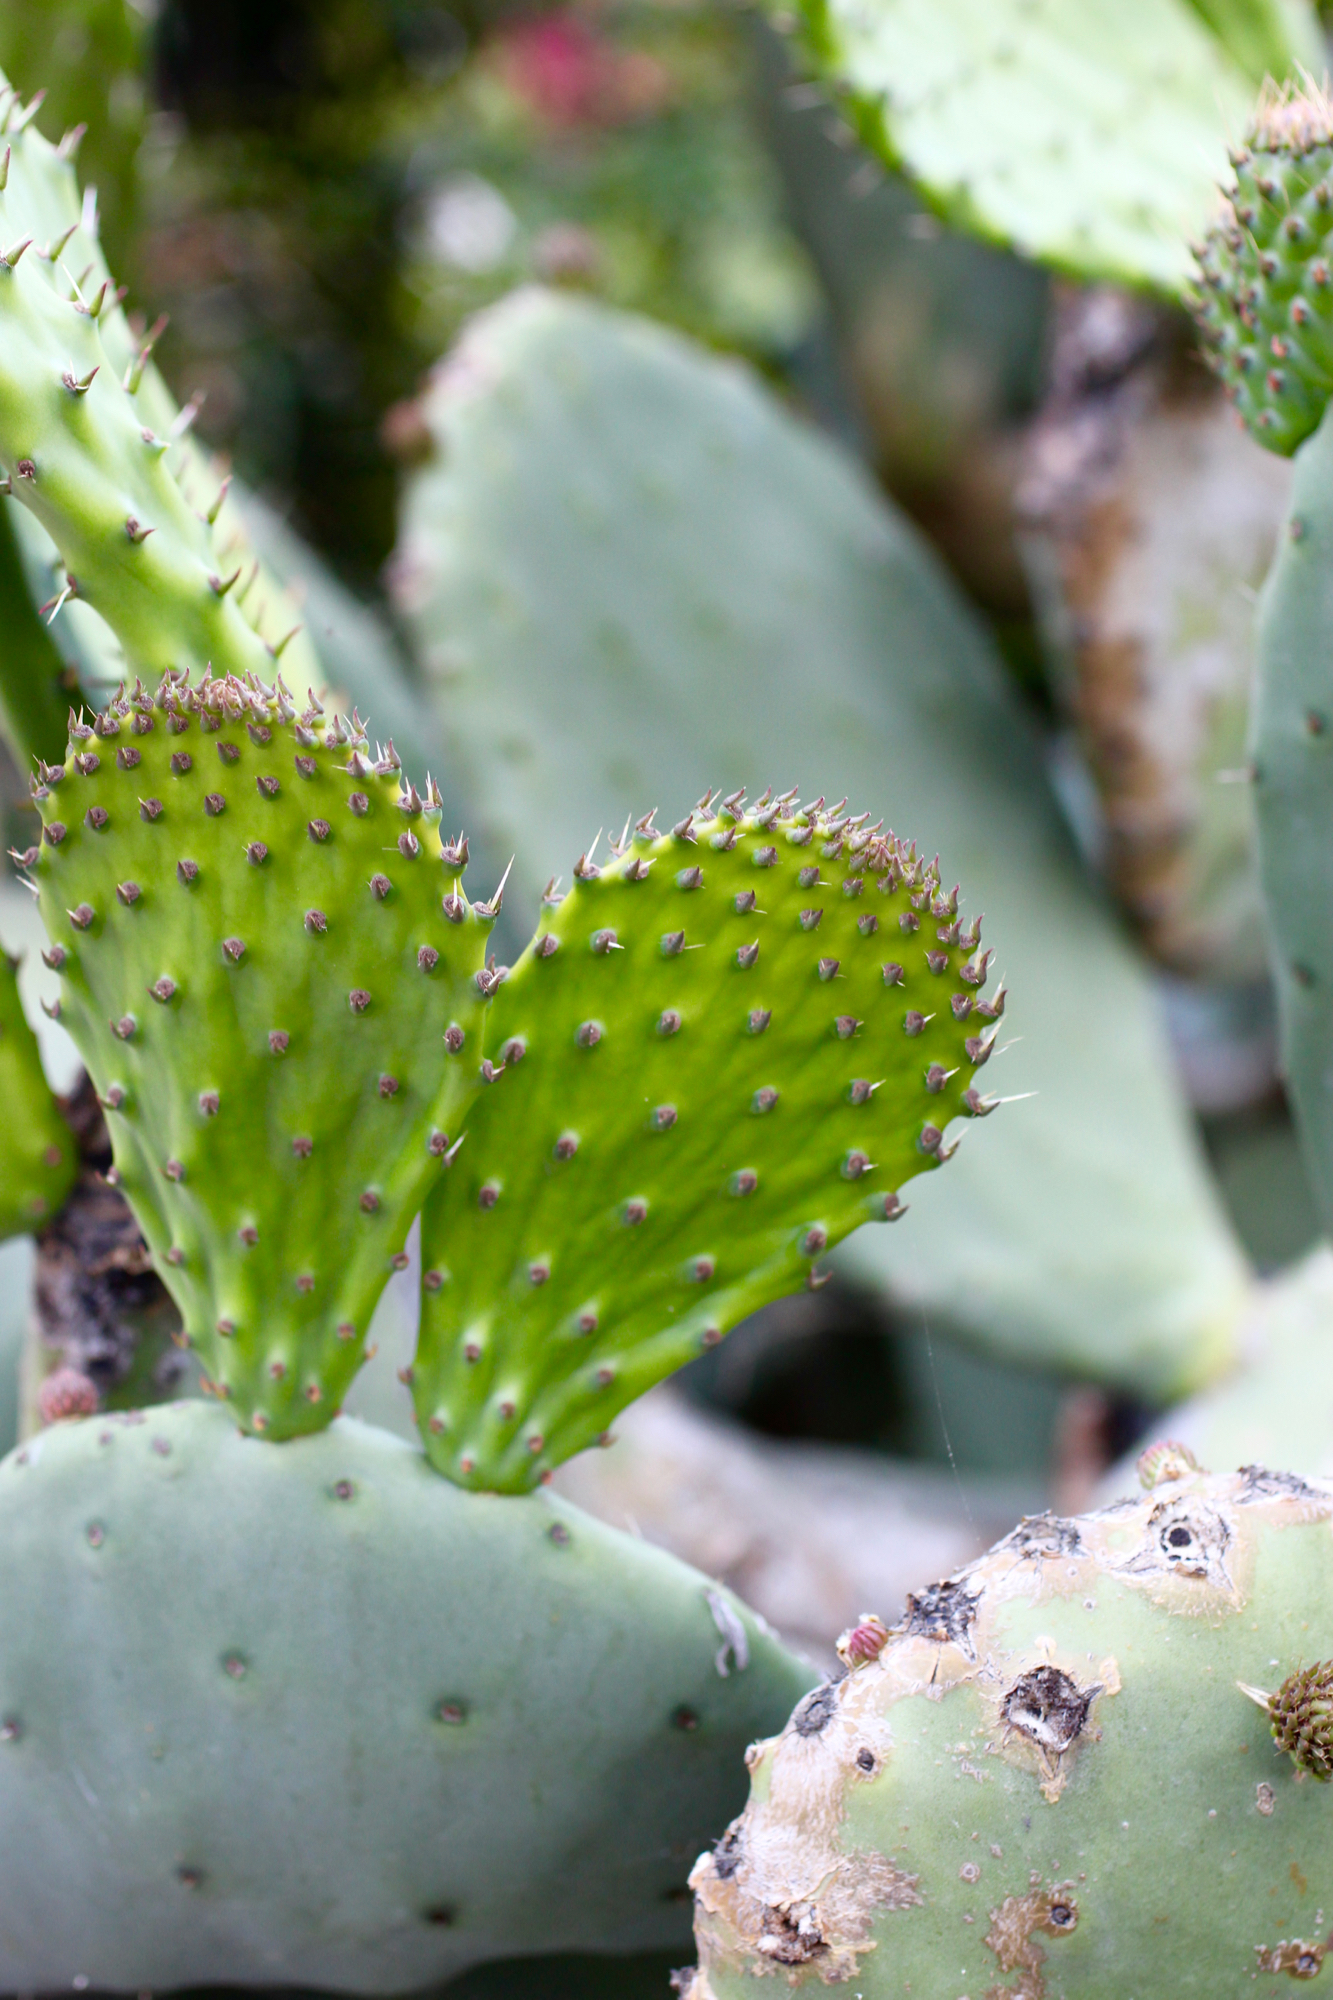 Nopales (cactus pads) that are at optimal tenderness - just remember to remove the spines!